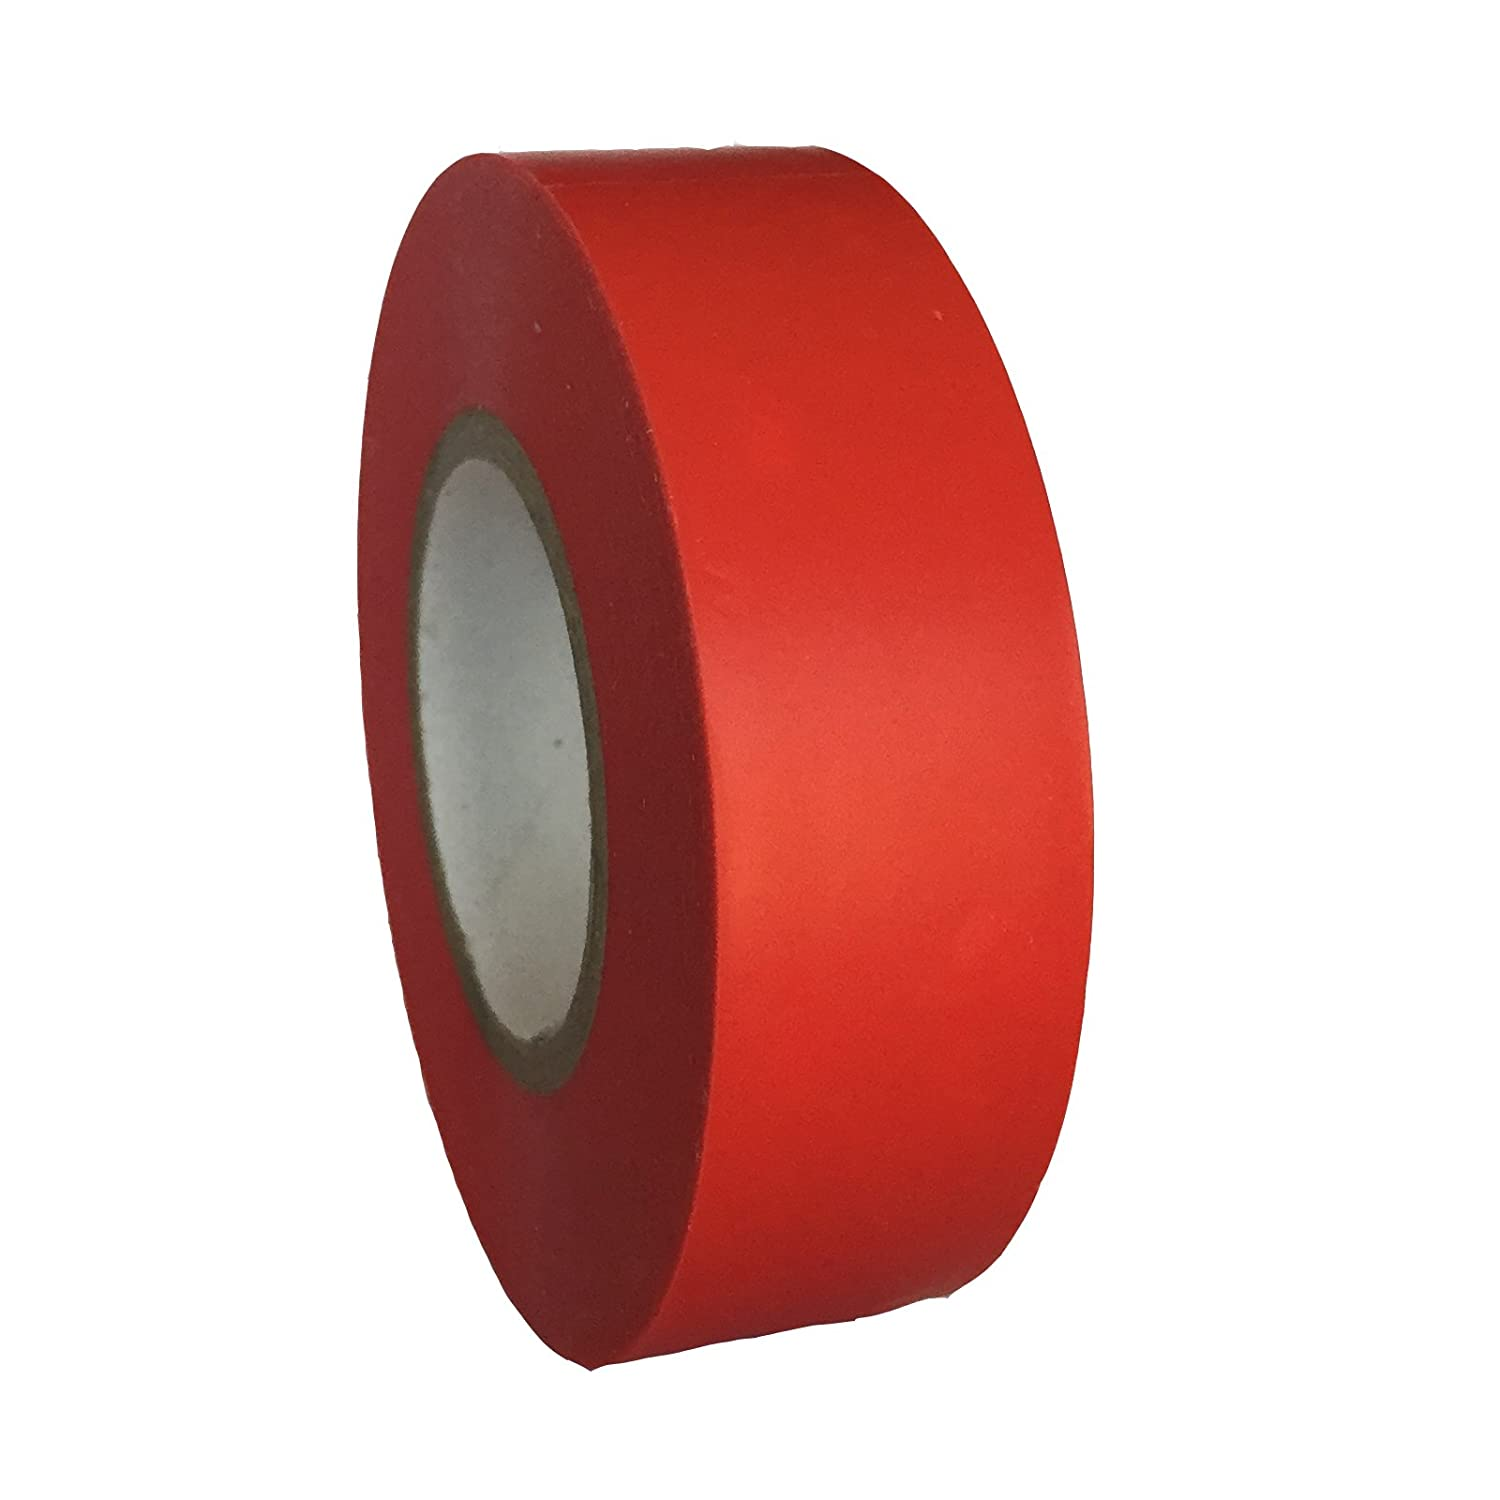 3 x 20 METRE WHOLESALE PREMIUM PVC SPORTS RUGBY FOOTBALL HOCKEY SOCK SHIN PAD BOOT LACE COLOURED TAPE RED Bailey Sports Therapy